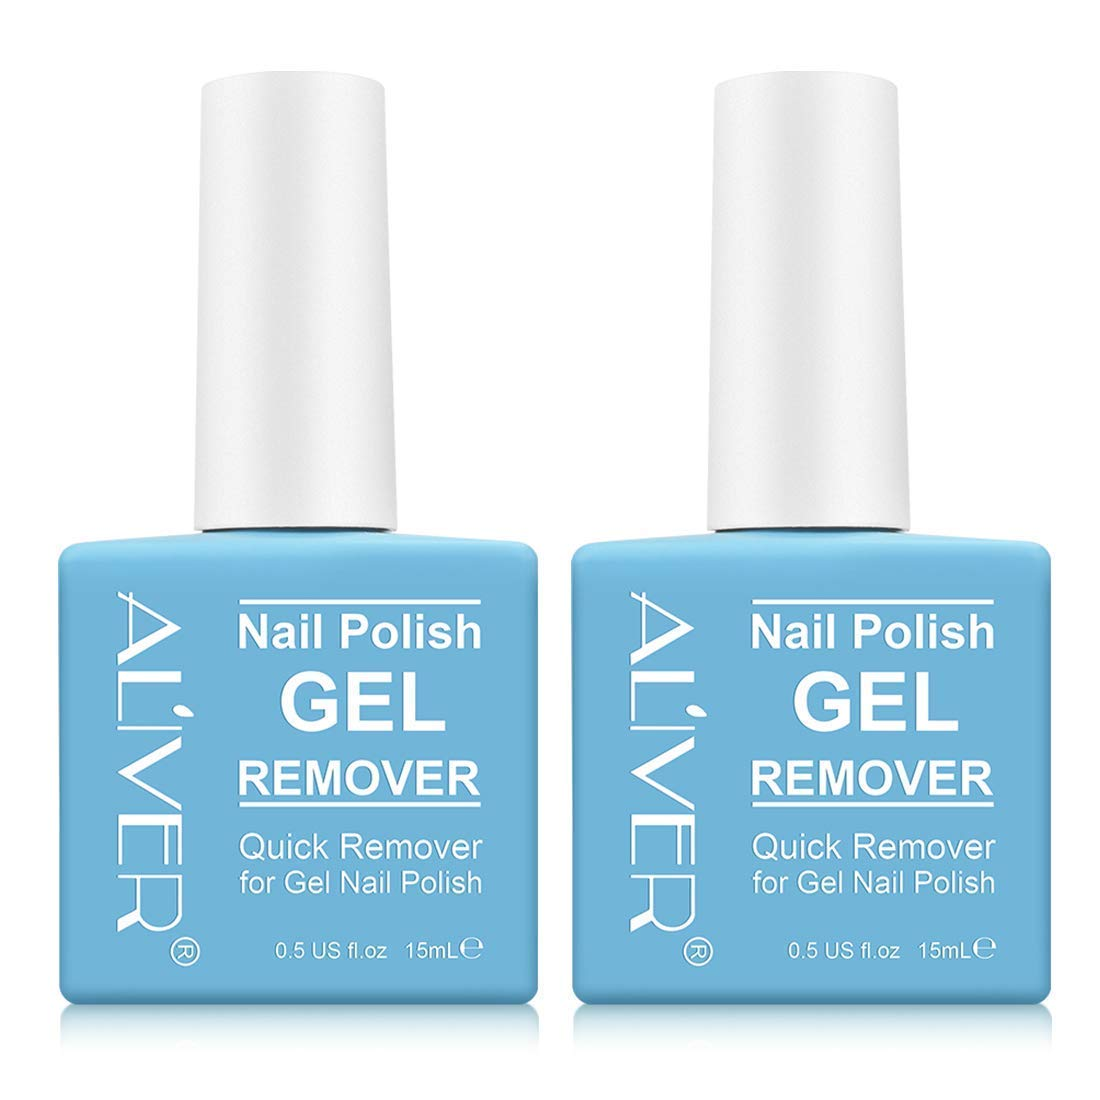 Magic Nail Polish Remover (2 Pack) - Remove Gel Nail Polish Within 2-3 Minutes - Quick & Easy Polish Remover - No Need For Foil, Soaking Or Wrapping, 0.5 Fl Oz